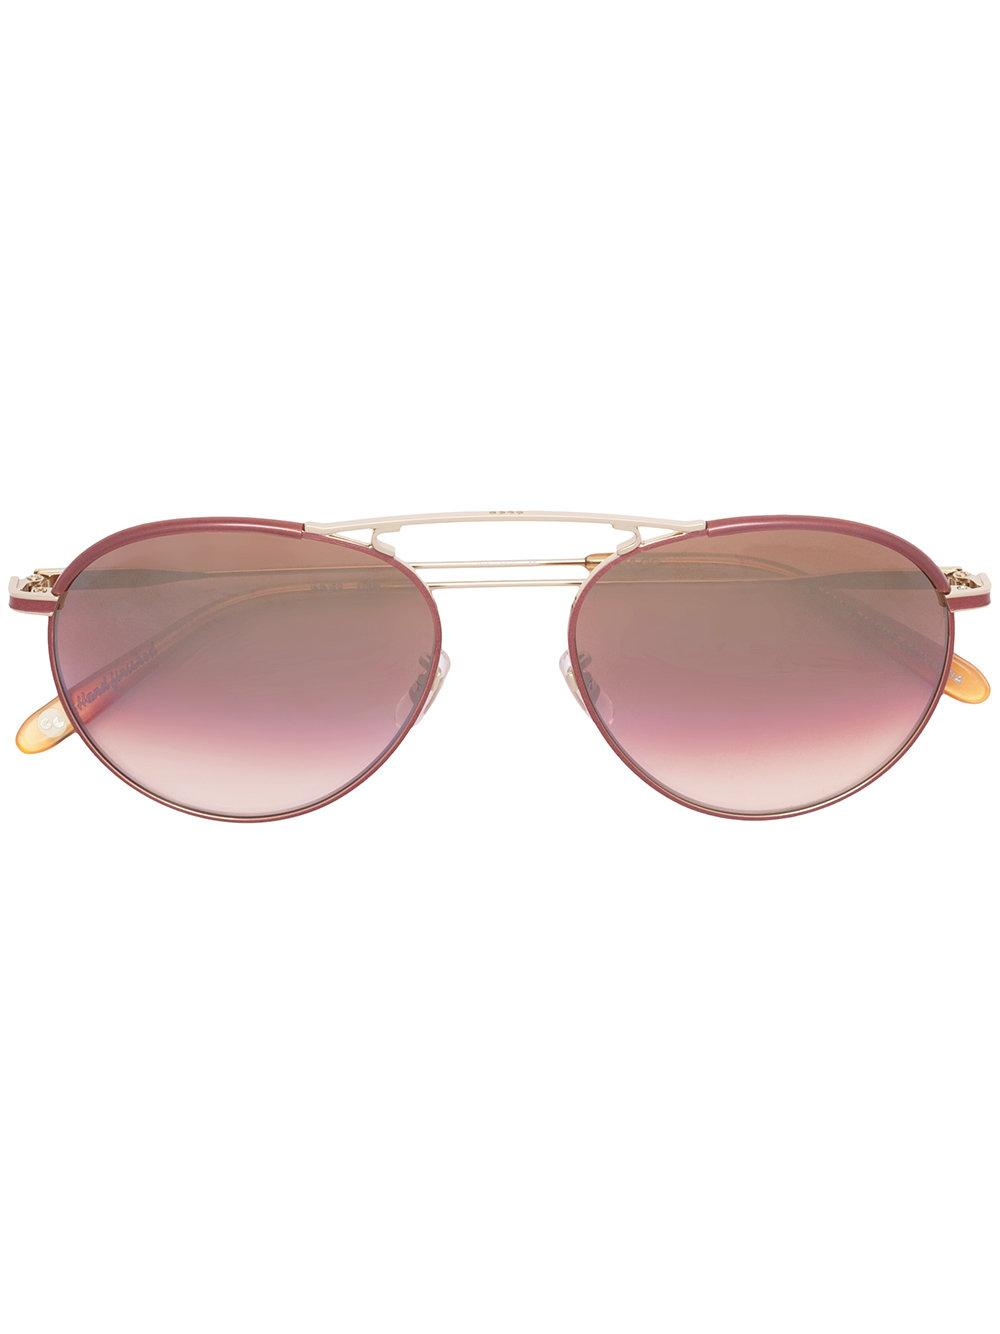 1405c9cffe Ray Ban Deals 10463 « One More Soul